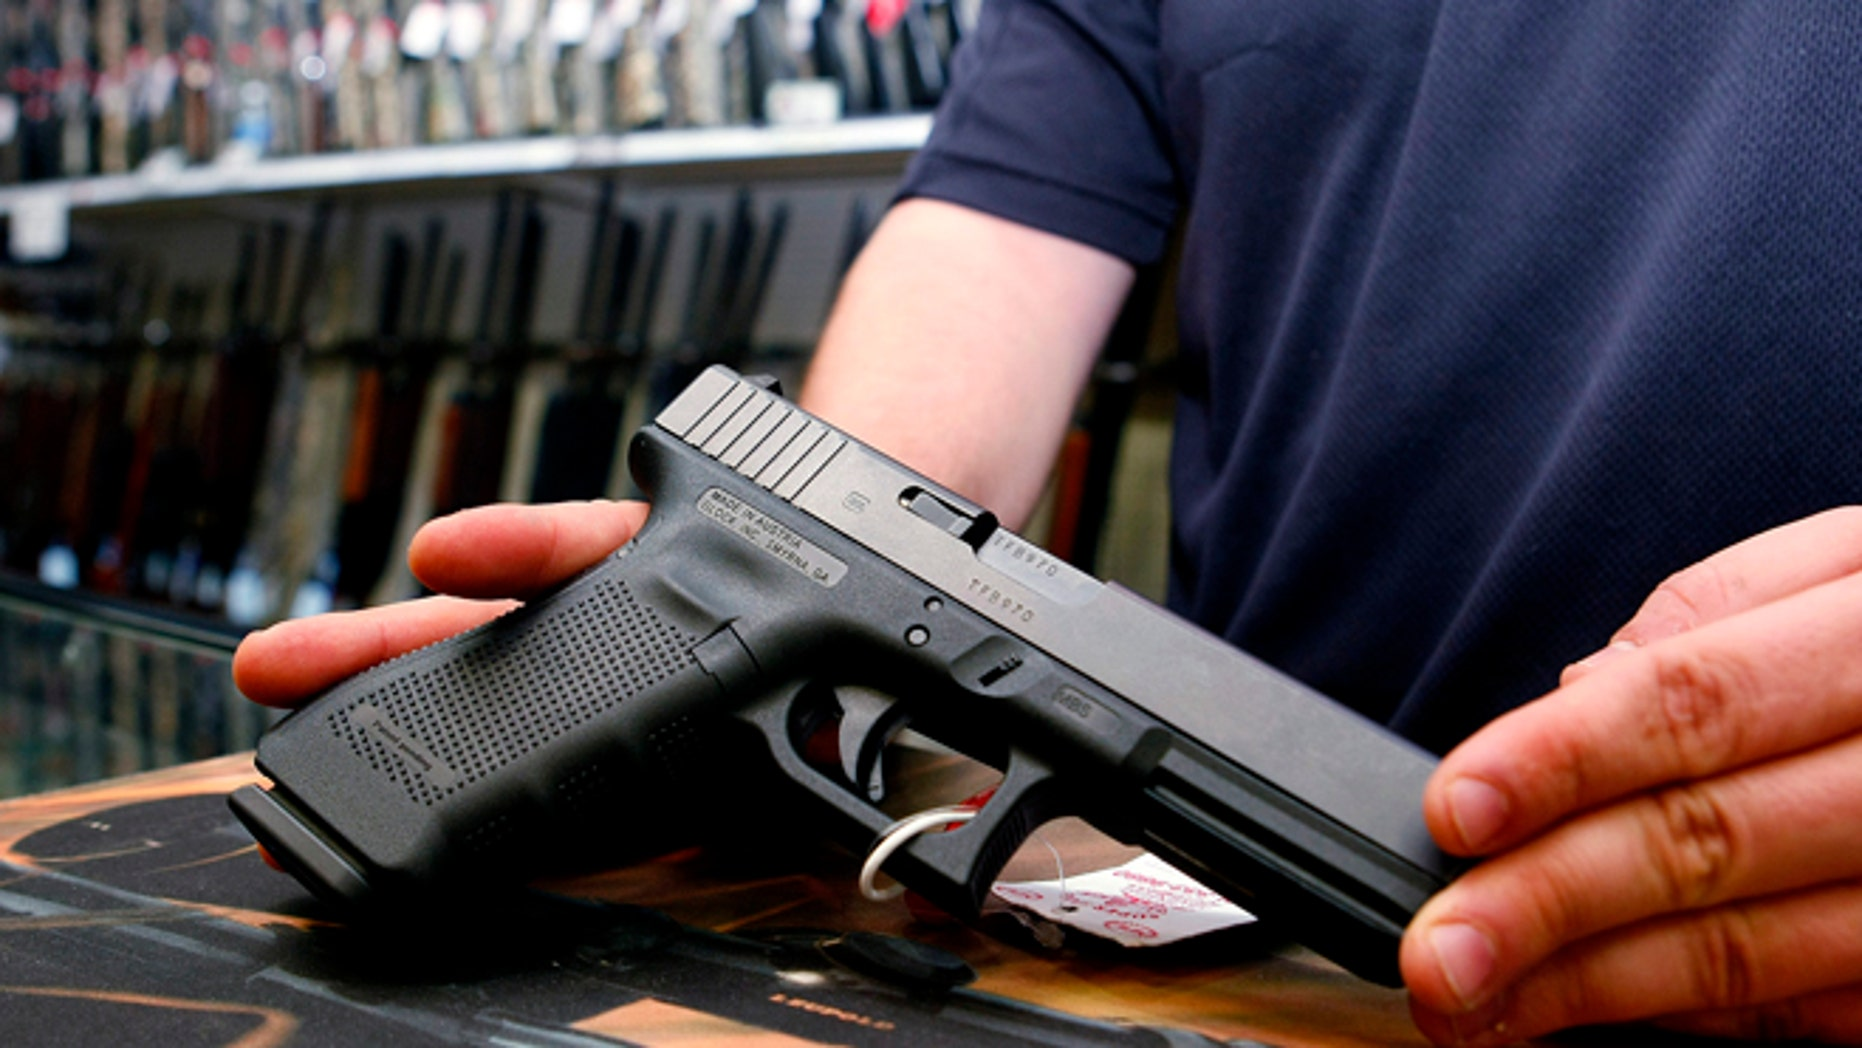 October 25, 2012: A Glock handgun available in a raffle promotion is shown at Adventures Outdoors in Smyrna, Georgia.